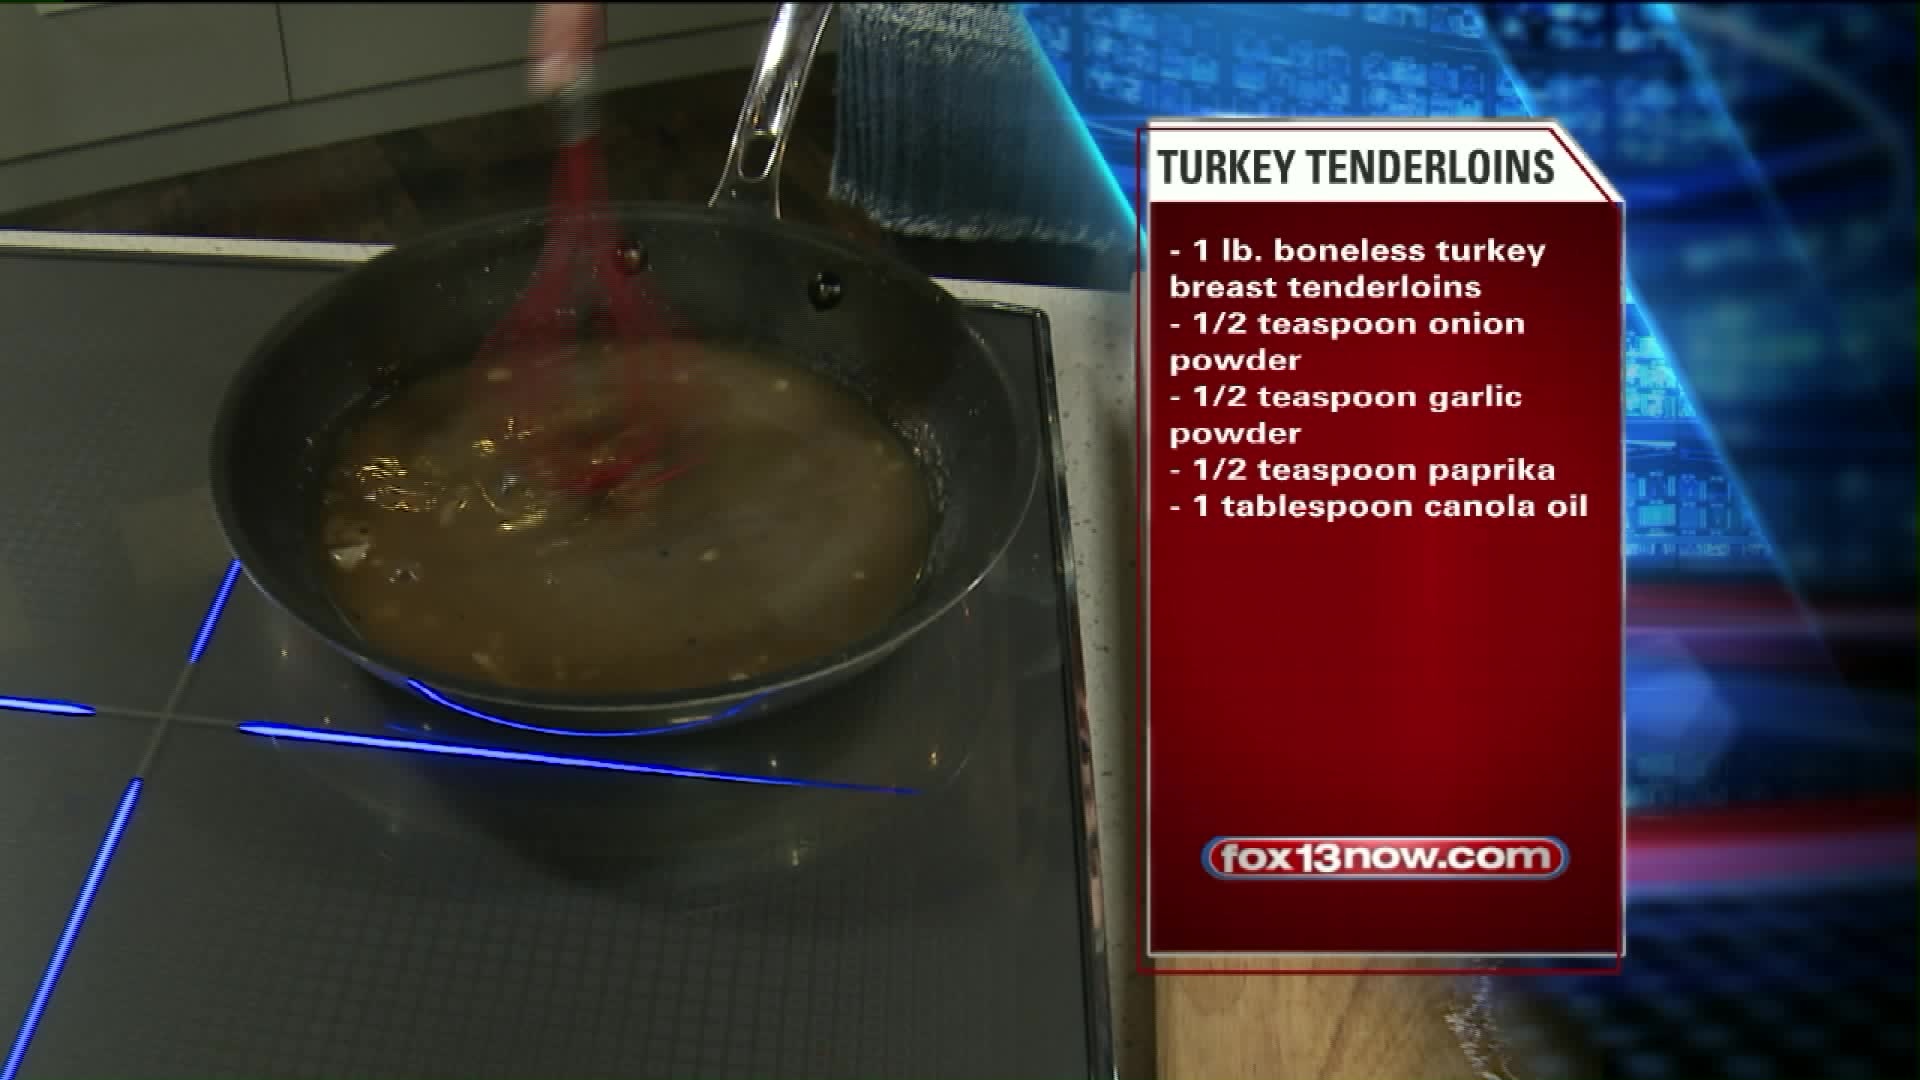 How To Make Lemon Parsley Turkey Tenderloins